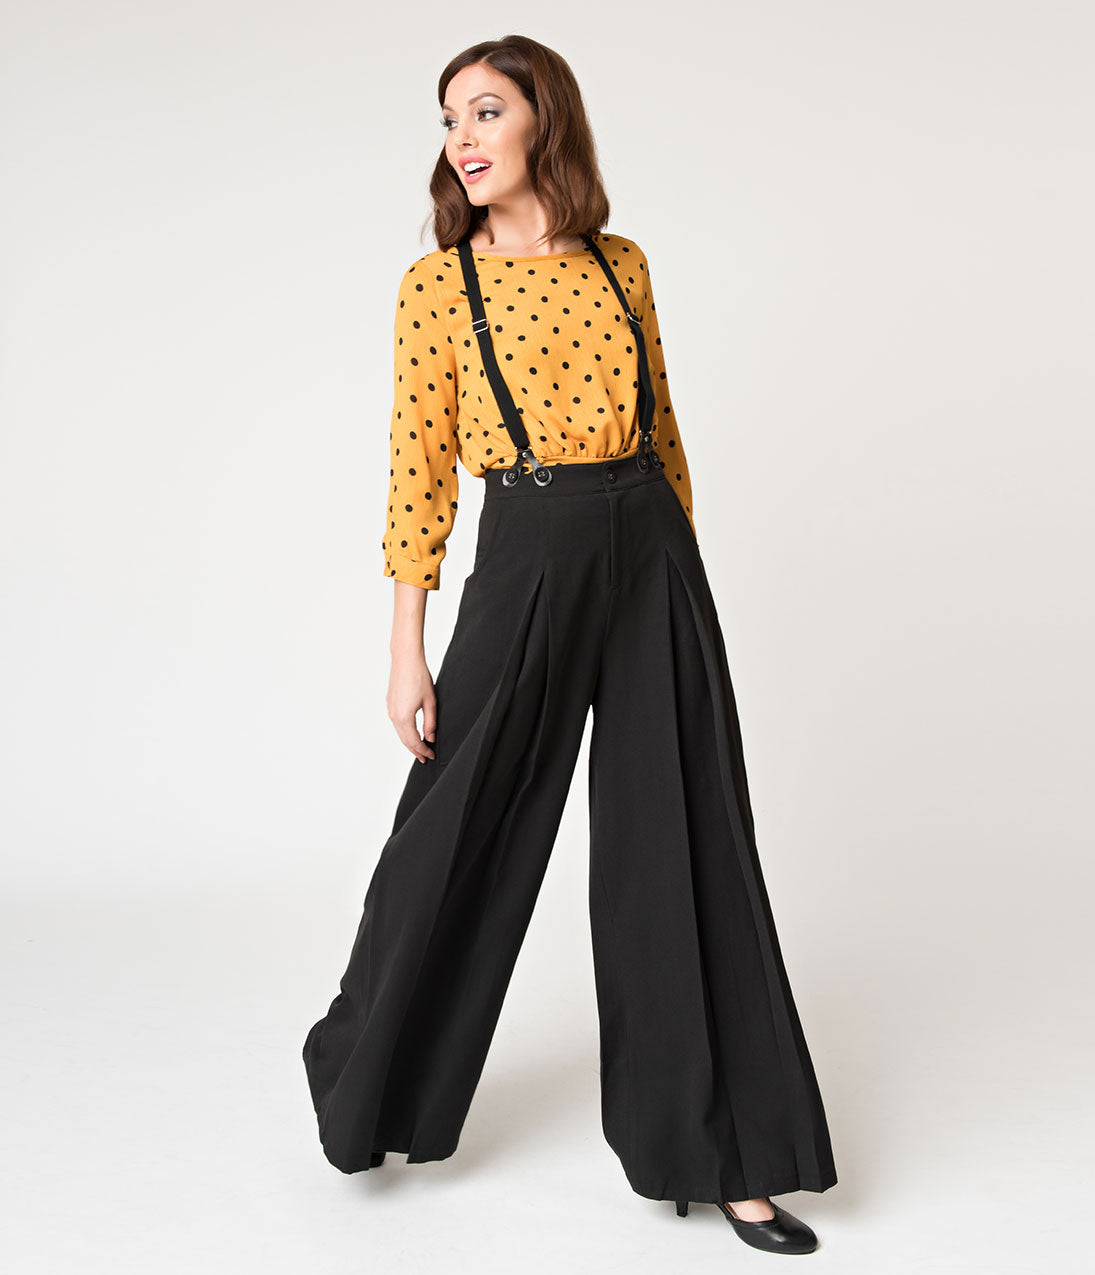 1940s Swing Pants & Sailor Trousers- Wide Leg, High Waist Voodoo Vixen Vintage Style Black Wide Leg Shelley Suspender Pants $62.00 AT vintagedancer.com